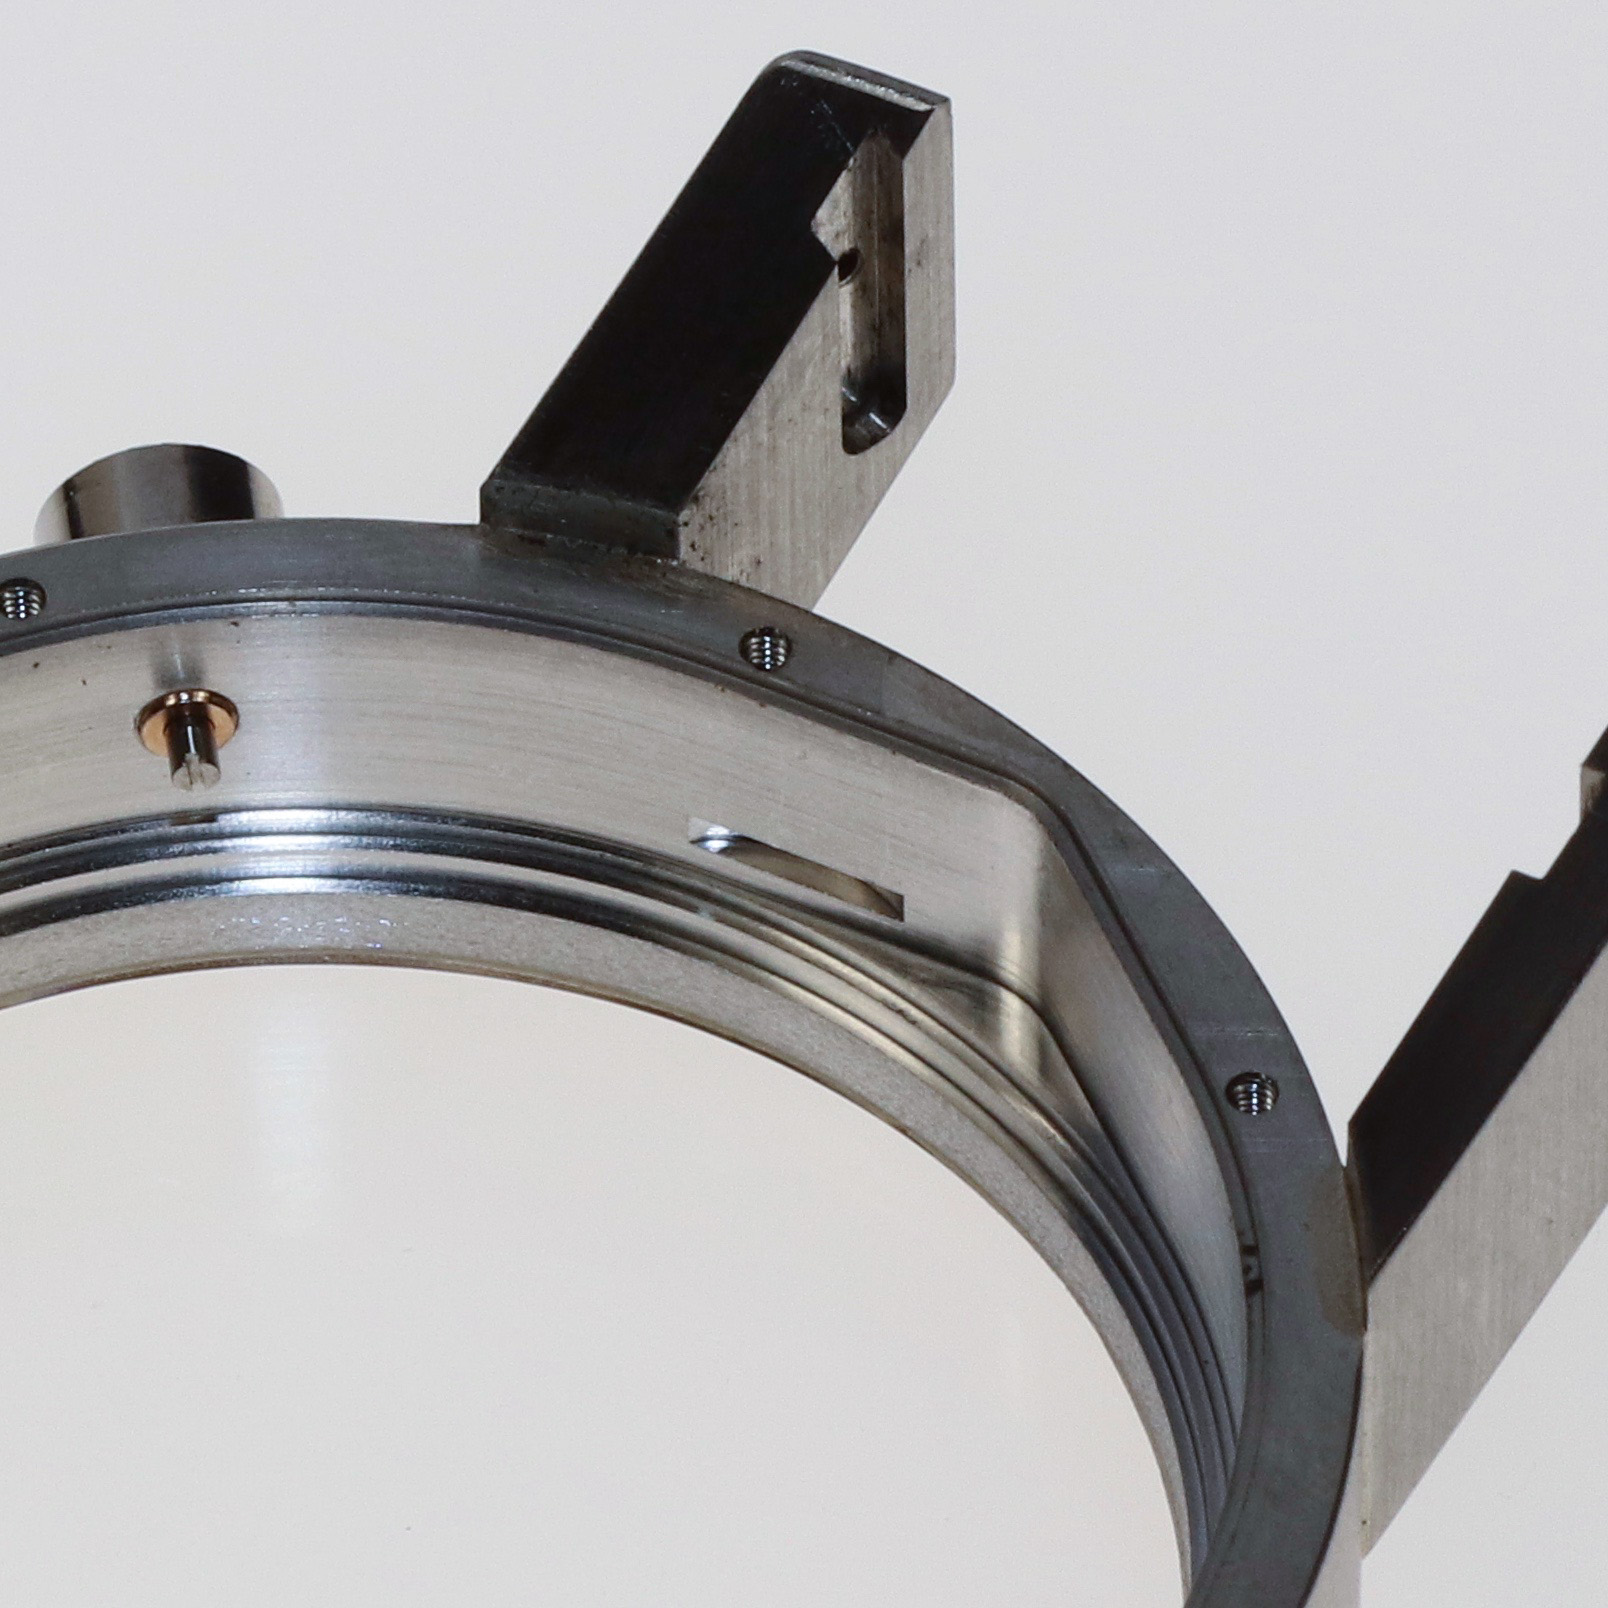 The cut out in the centre of the case is for the movement clamp allowing the movement to be tightly held inside once assembled